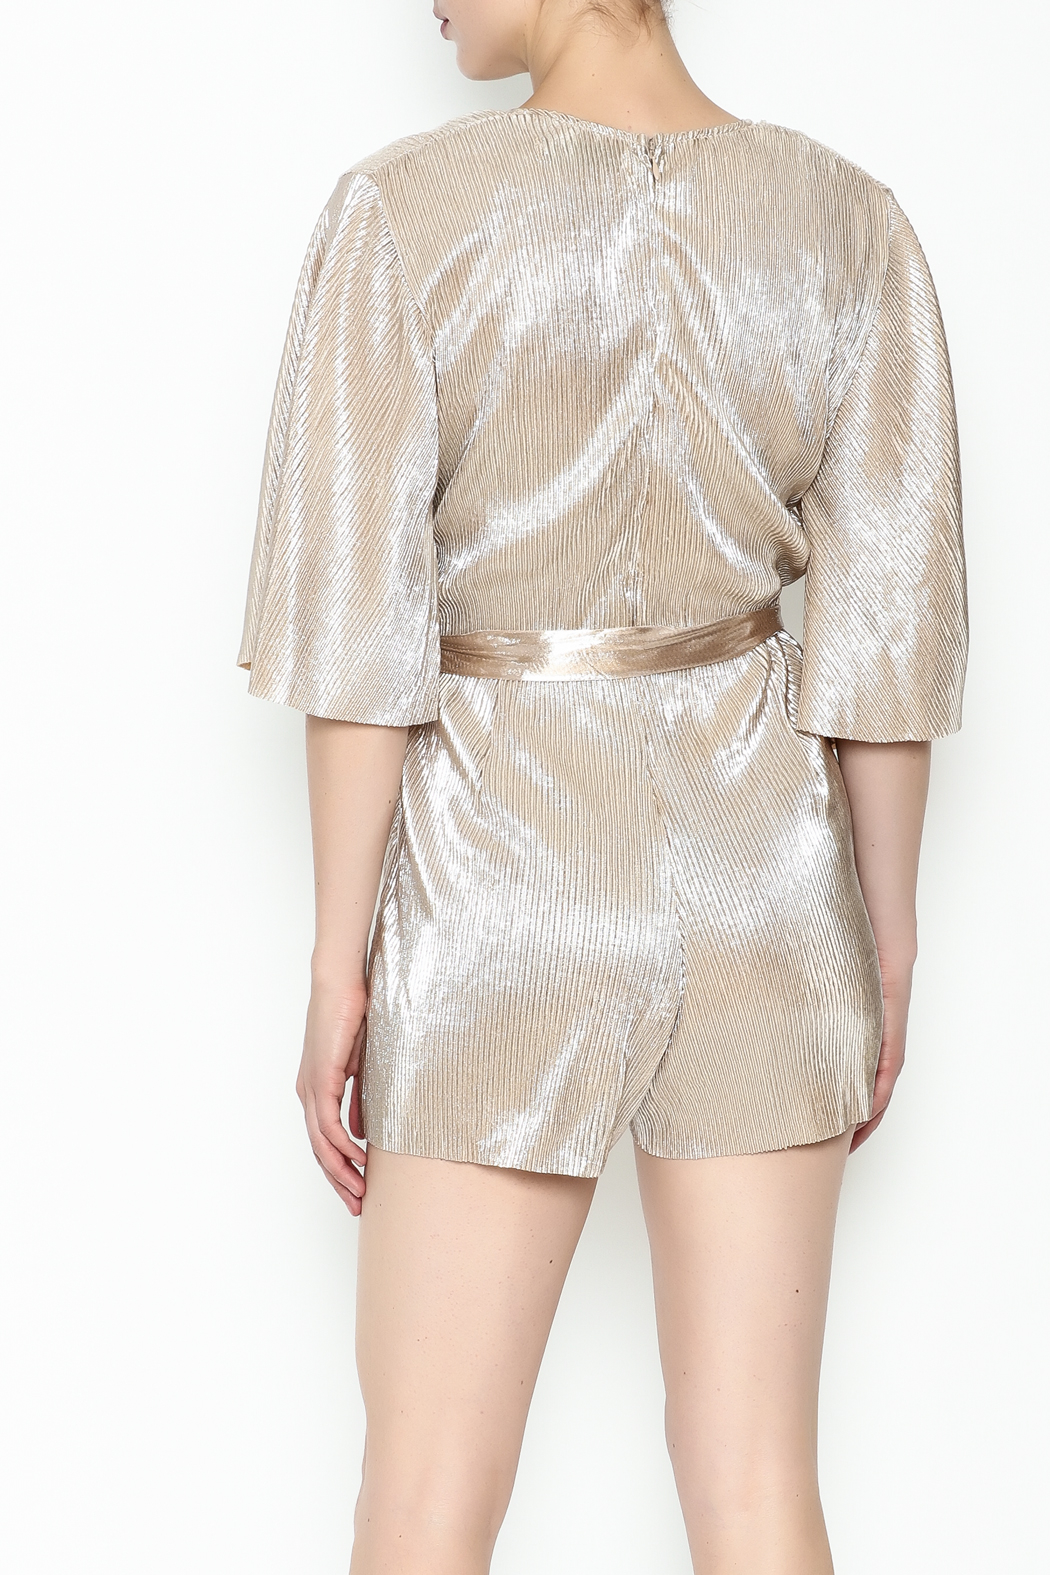 Do & Be Metallic Short Sleeved Romper - Back Cropped Image